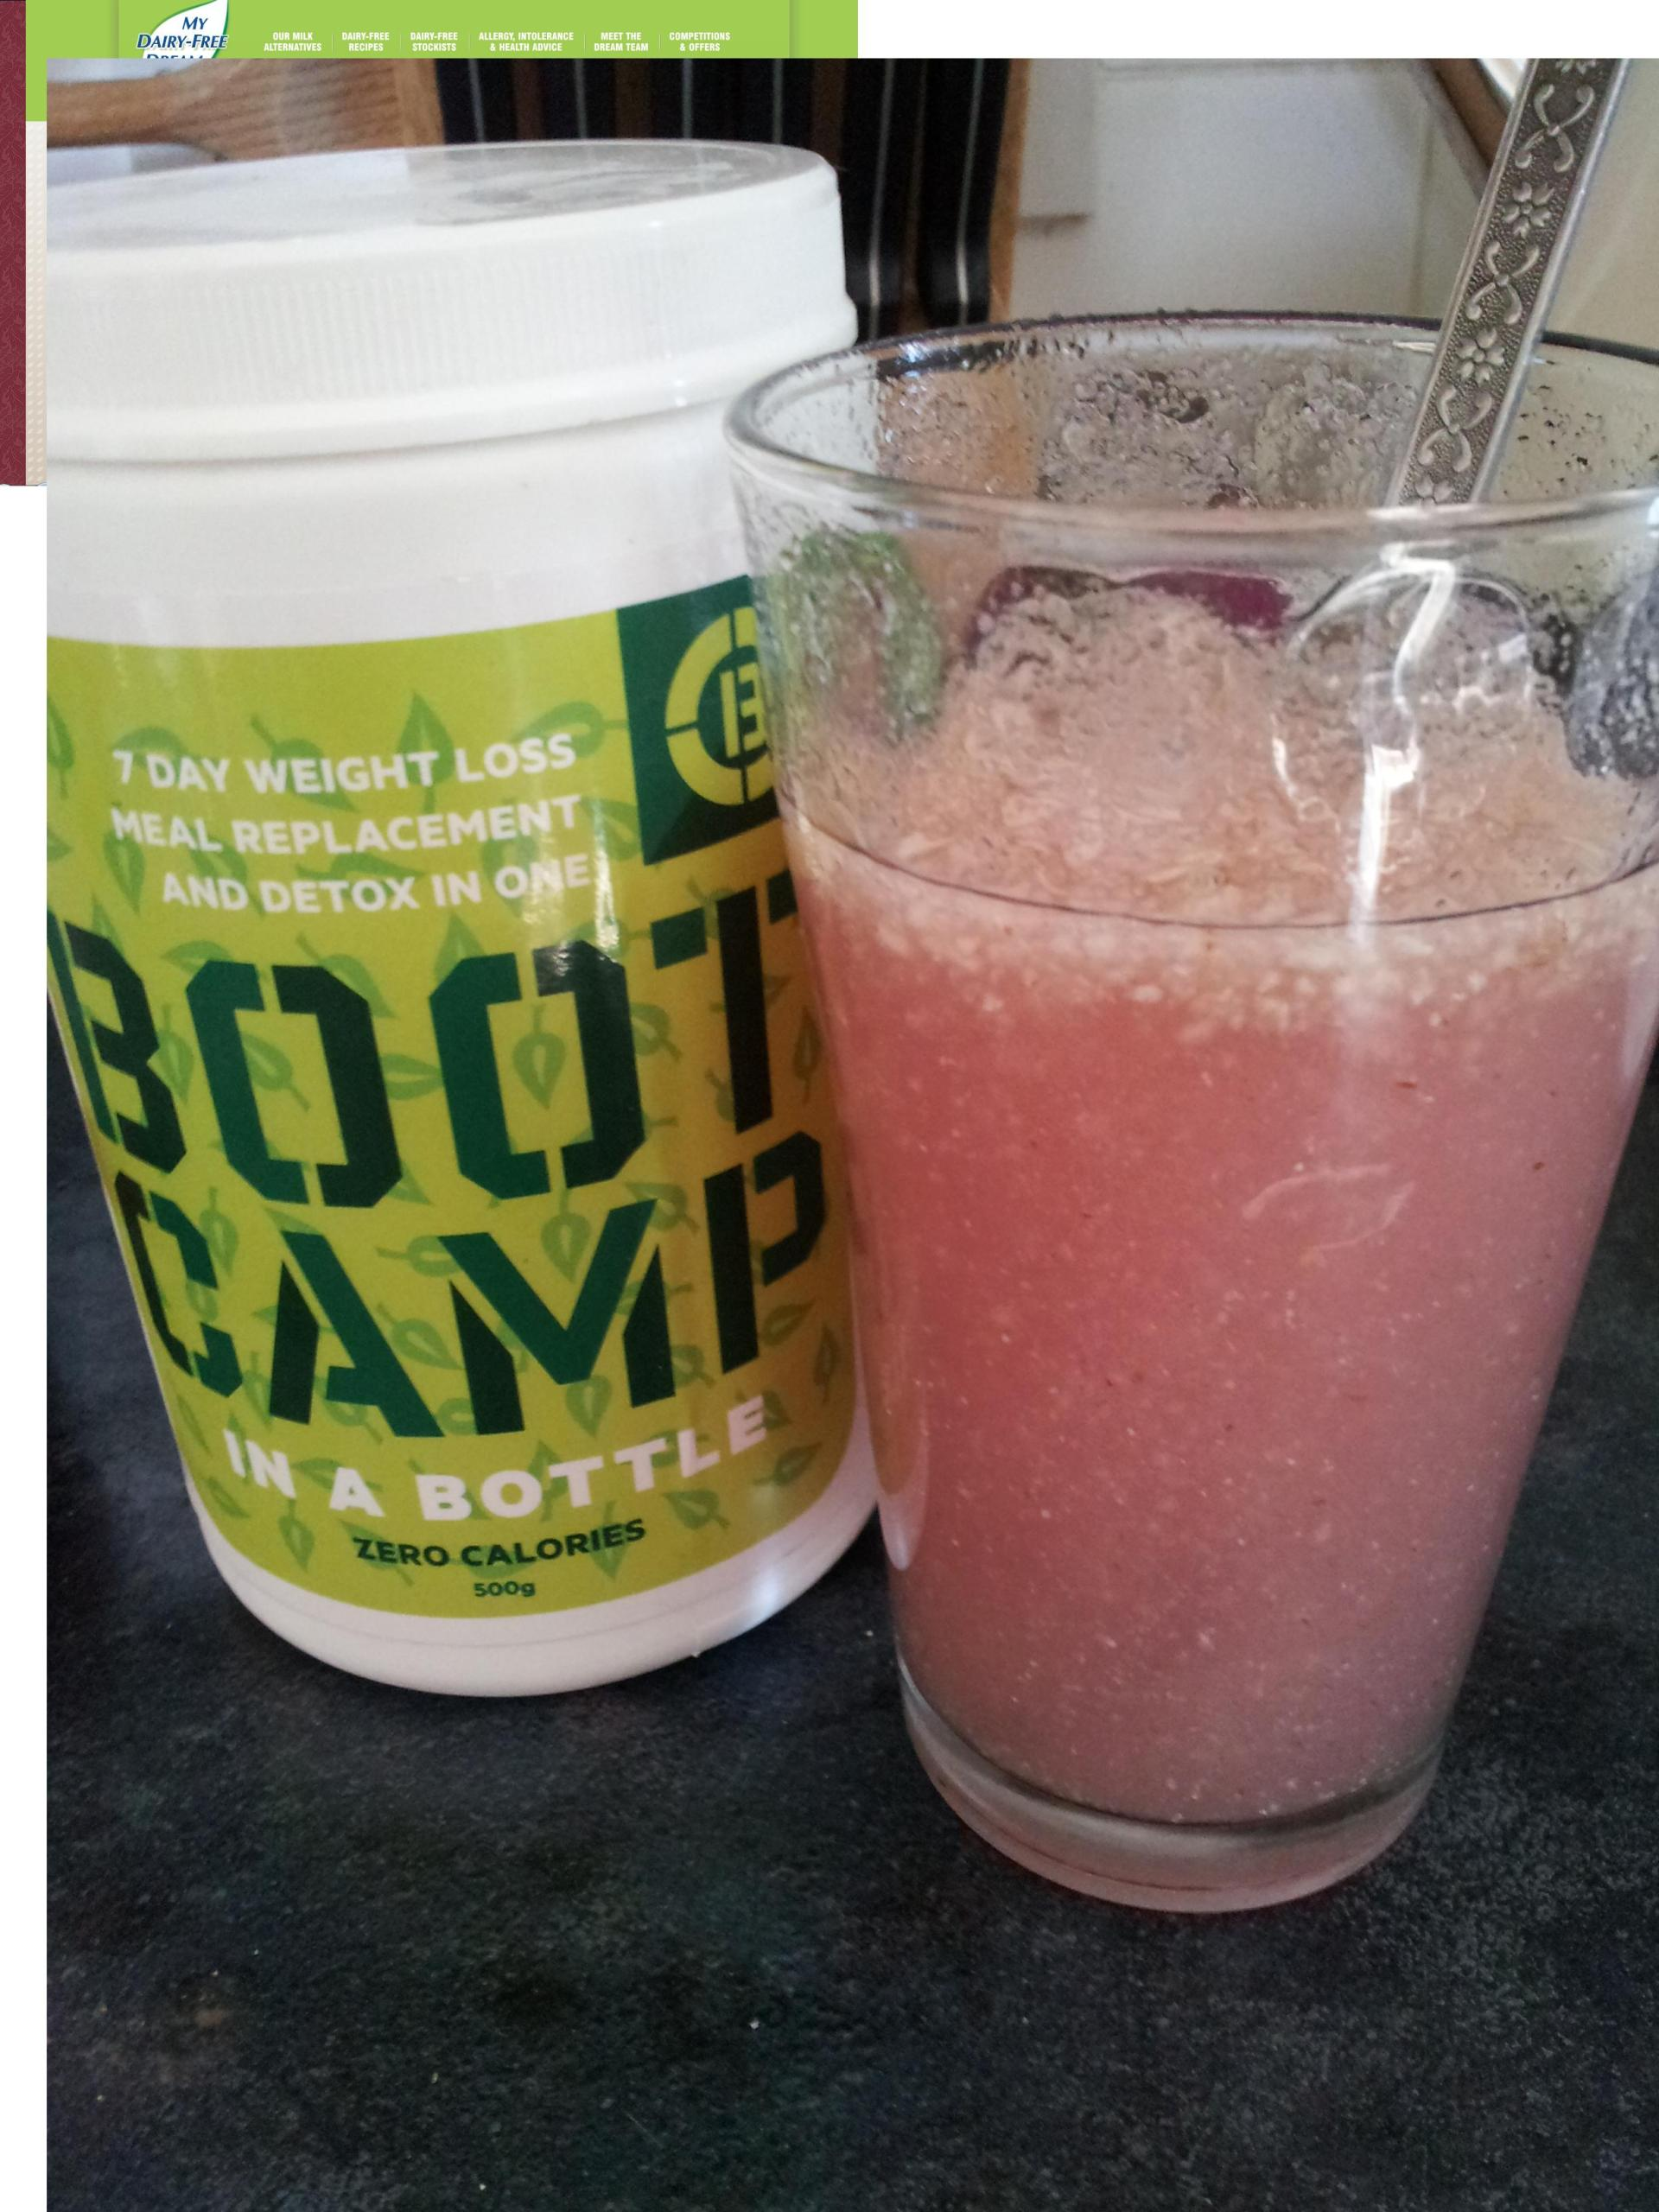 Boot Camp In A Bottle with squash